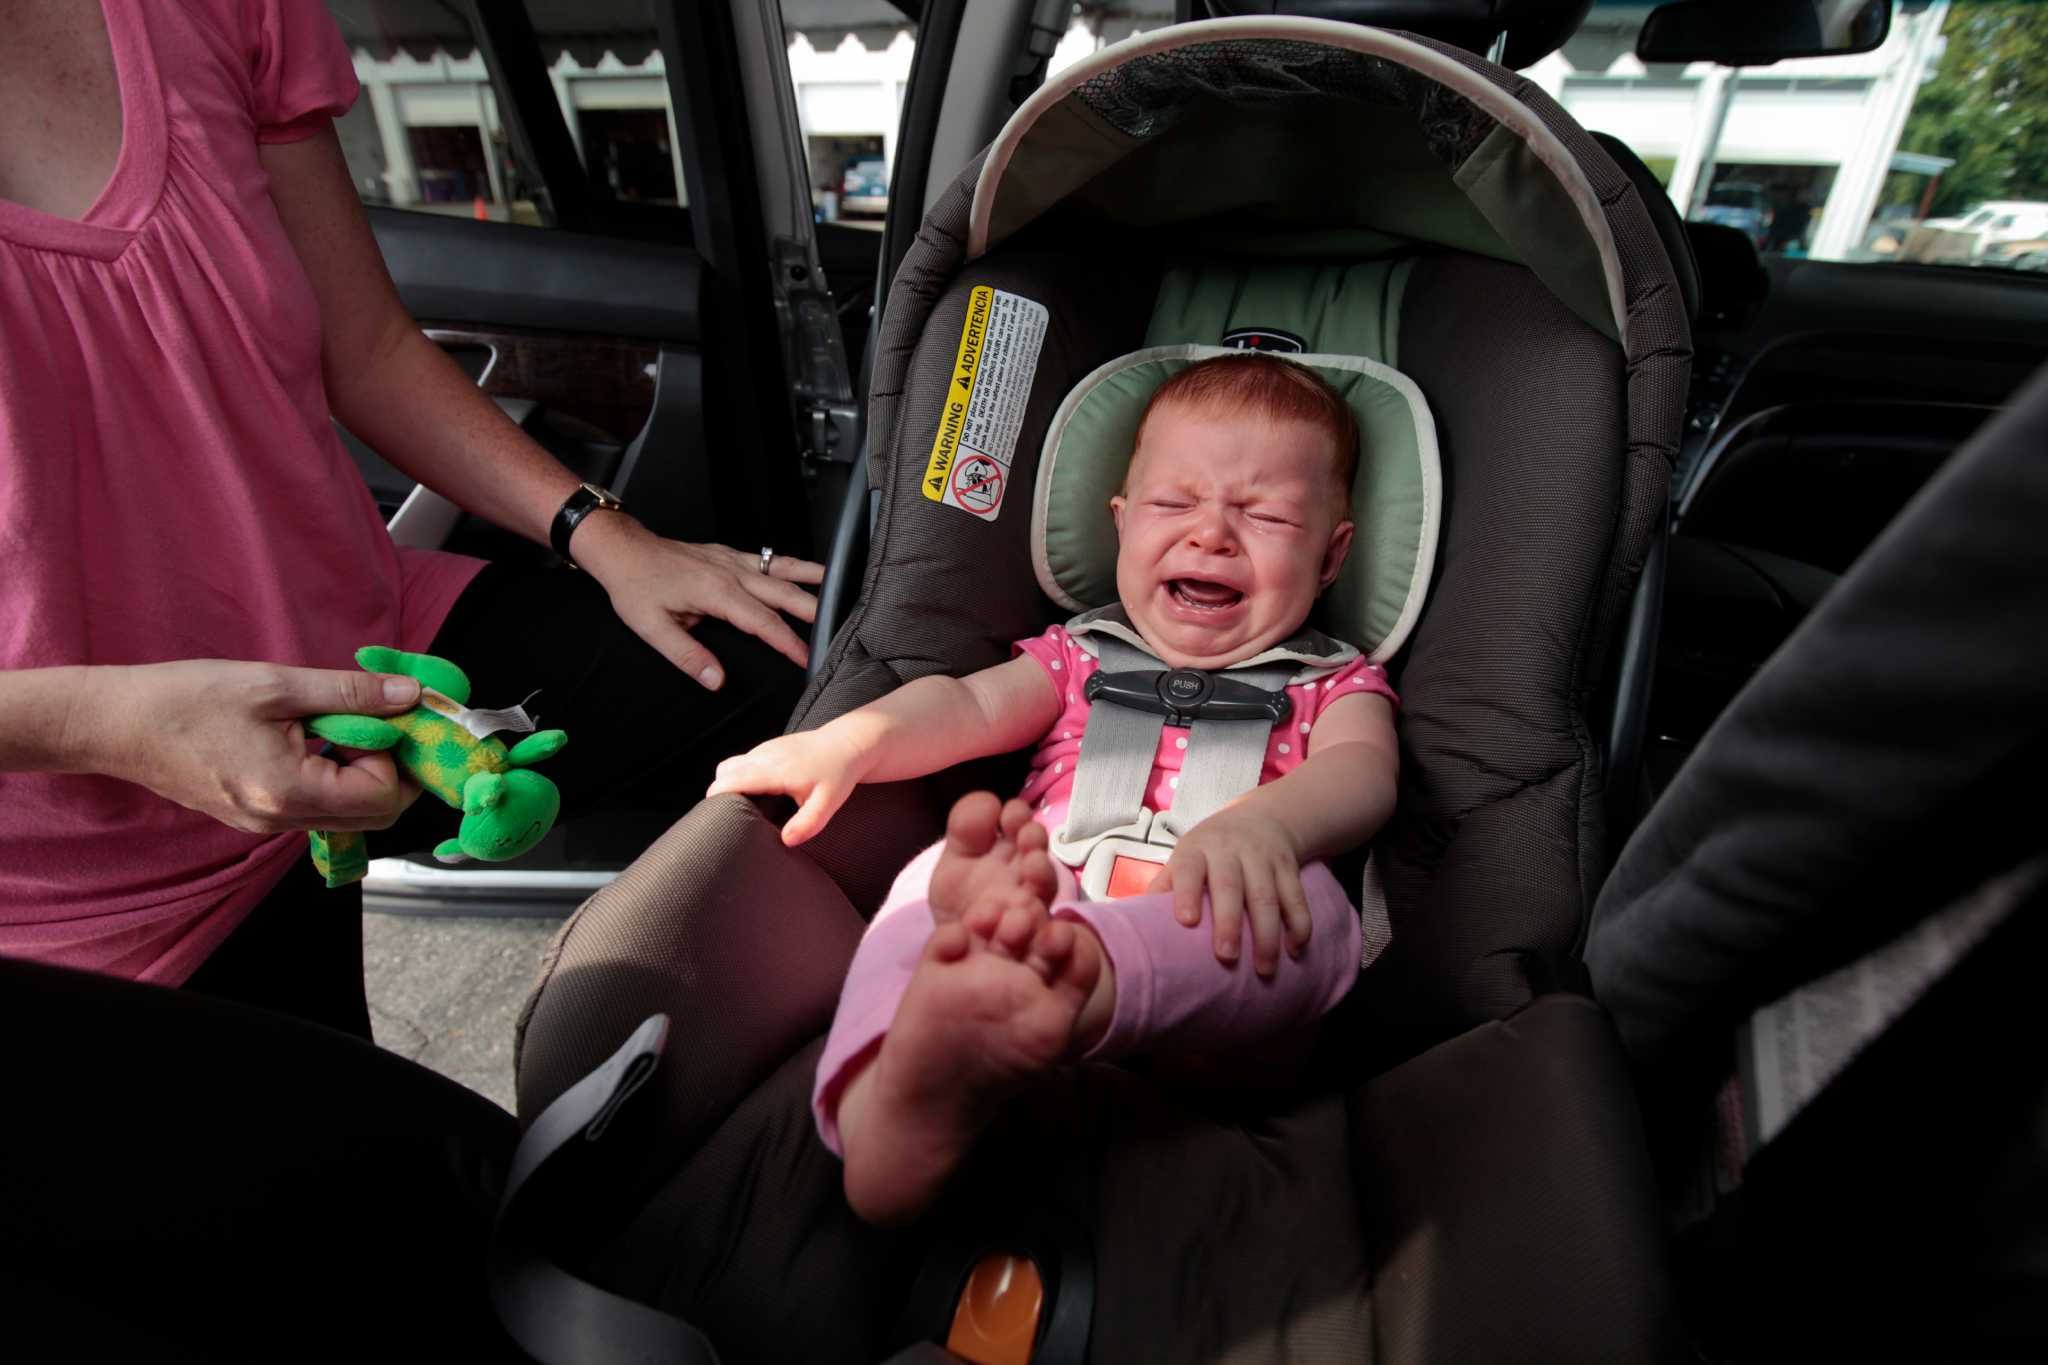 Car Seat: What to Do When the Baby Cries?